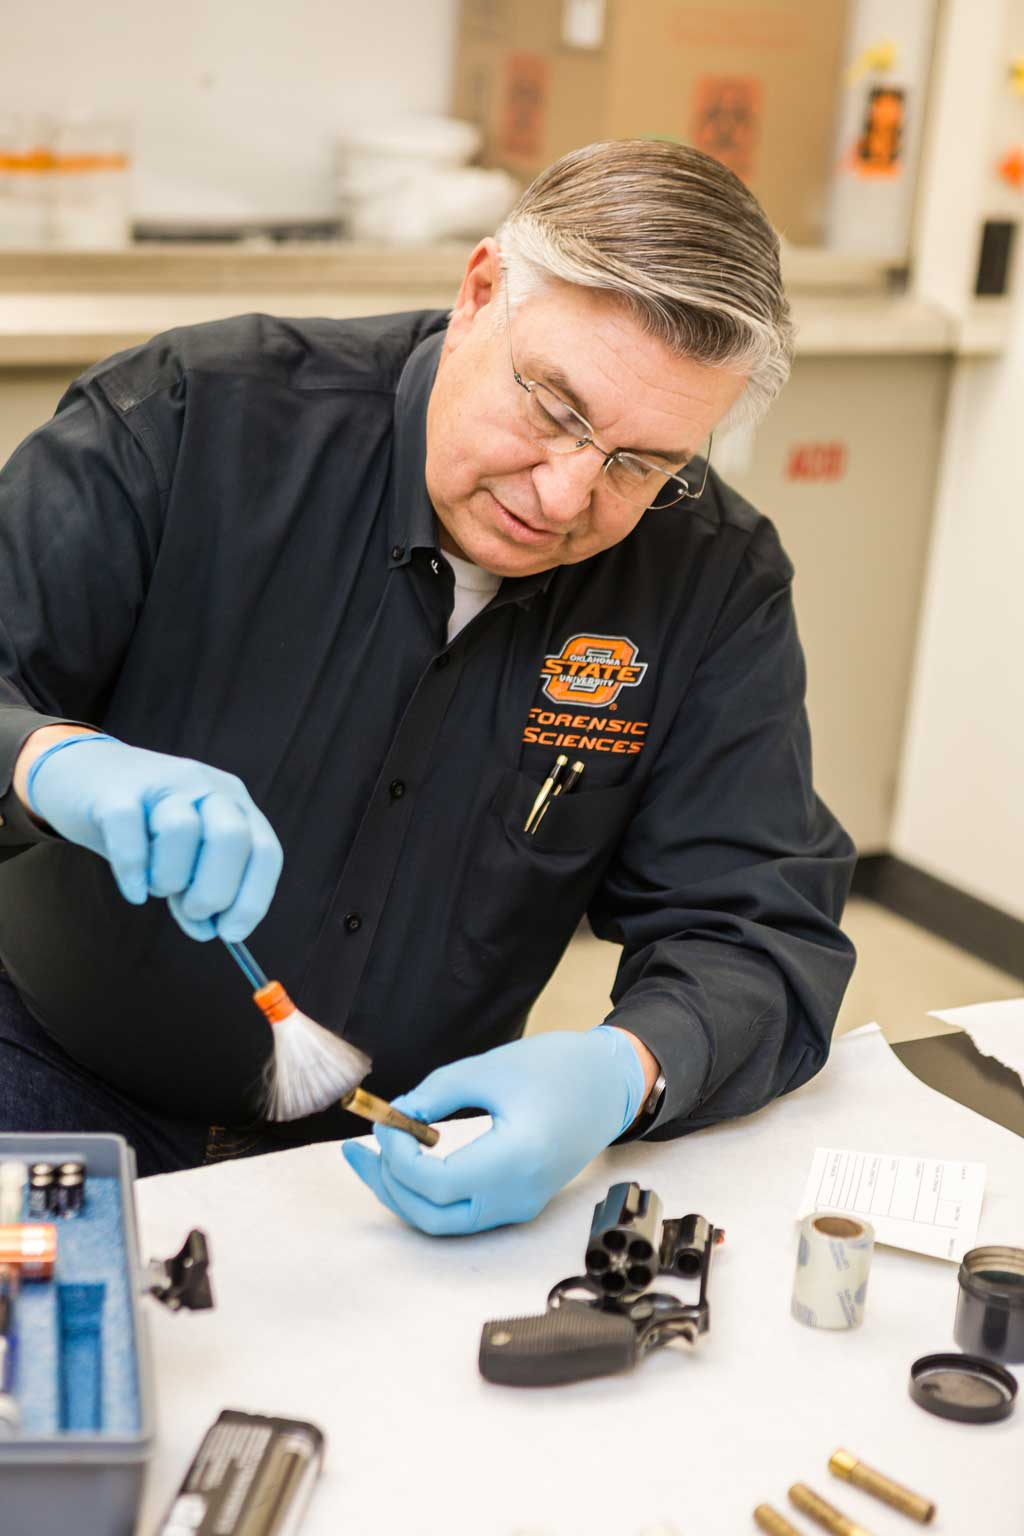 Forensics professor Ton Thrasher has students collect physical and behavioral evidence as they work a crime scene. Photos by Chris Humphrey Photographer.